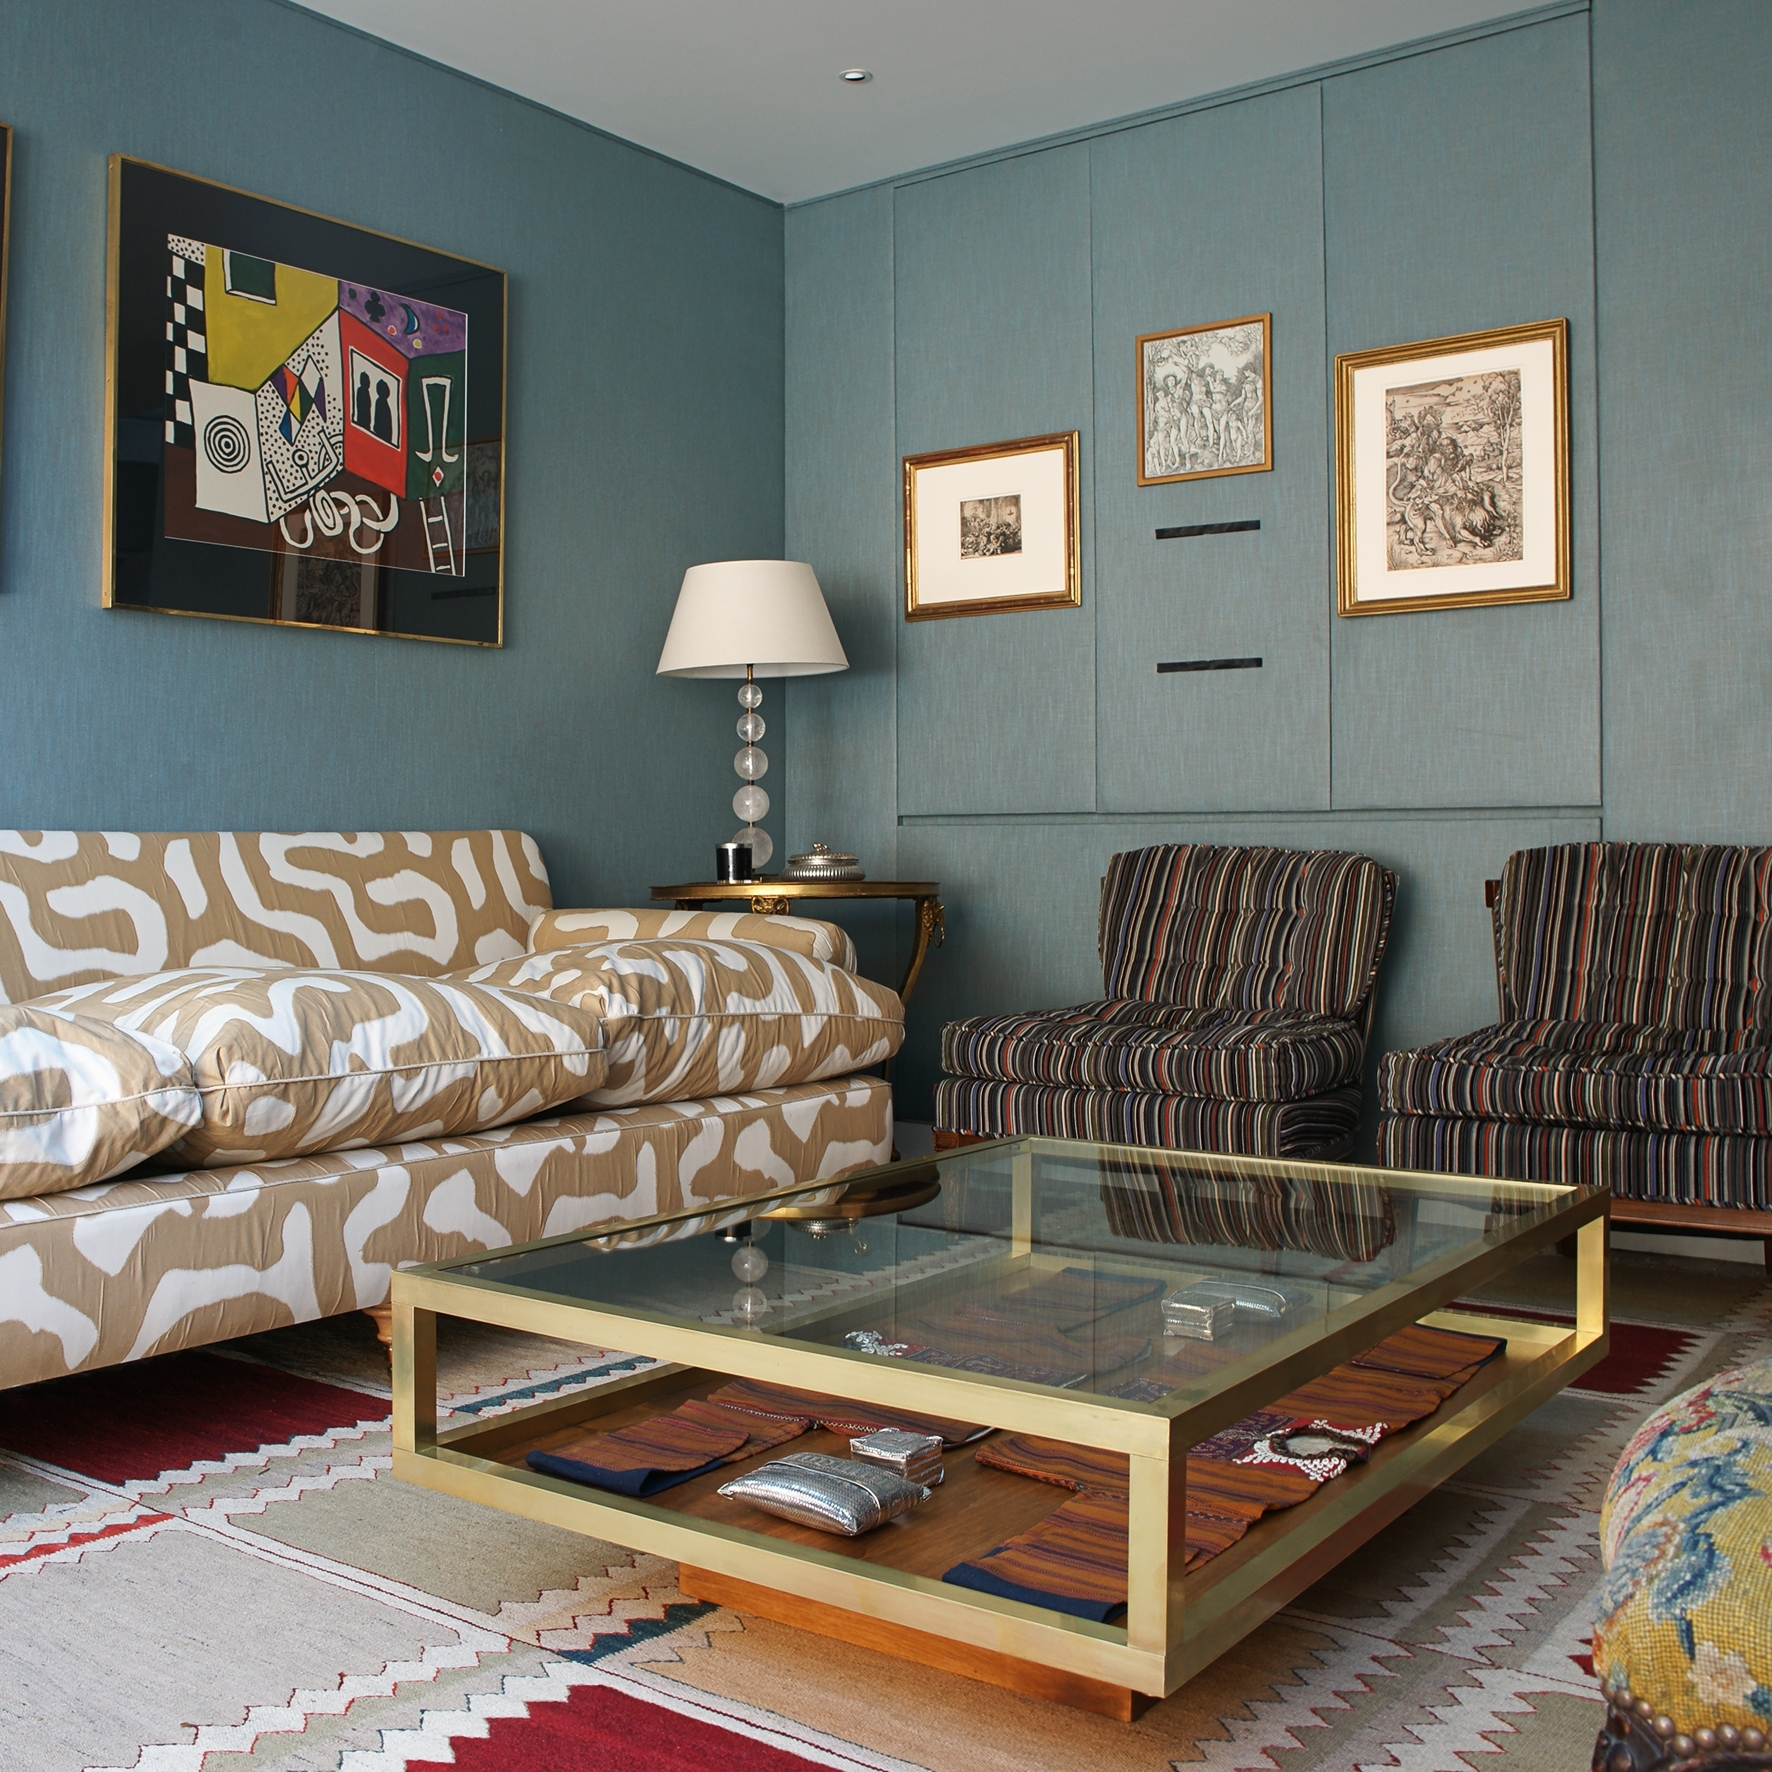 Famous Slab Large Marble Coffee Tables With Brass Base Regarding Save Or Splurge: Brass And Glass Coffee Tables (View 7 of 20)